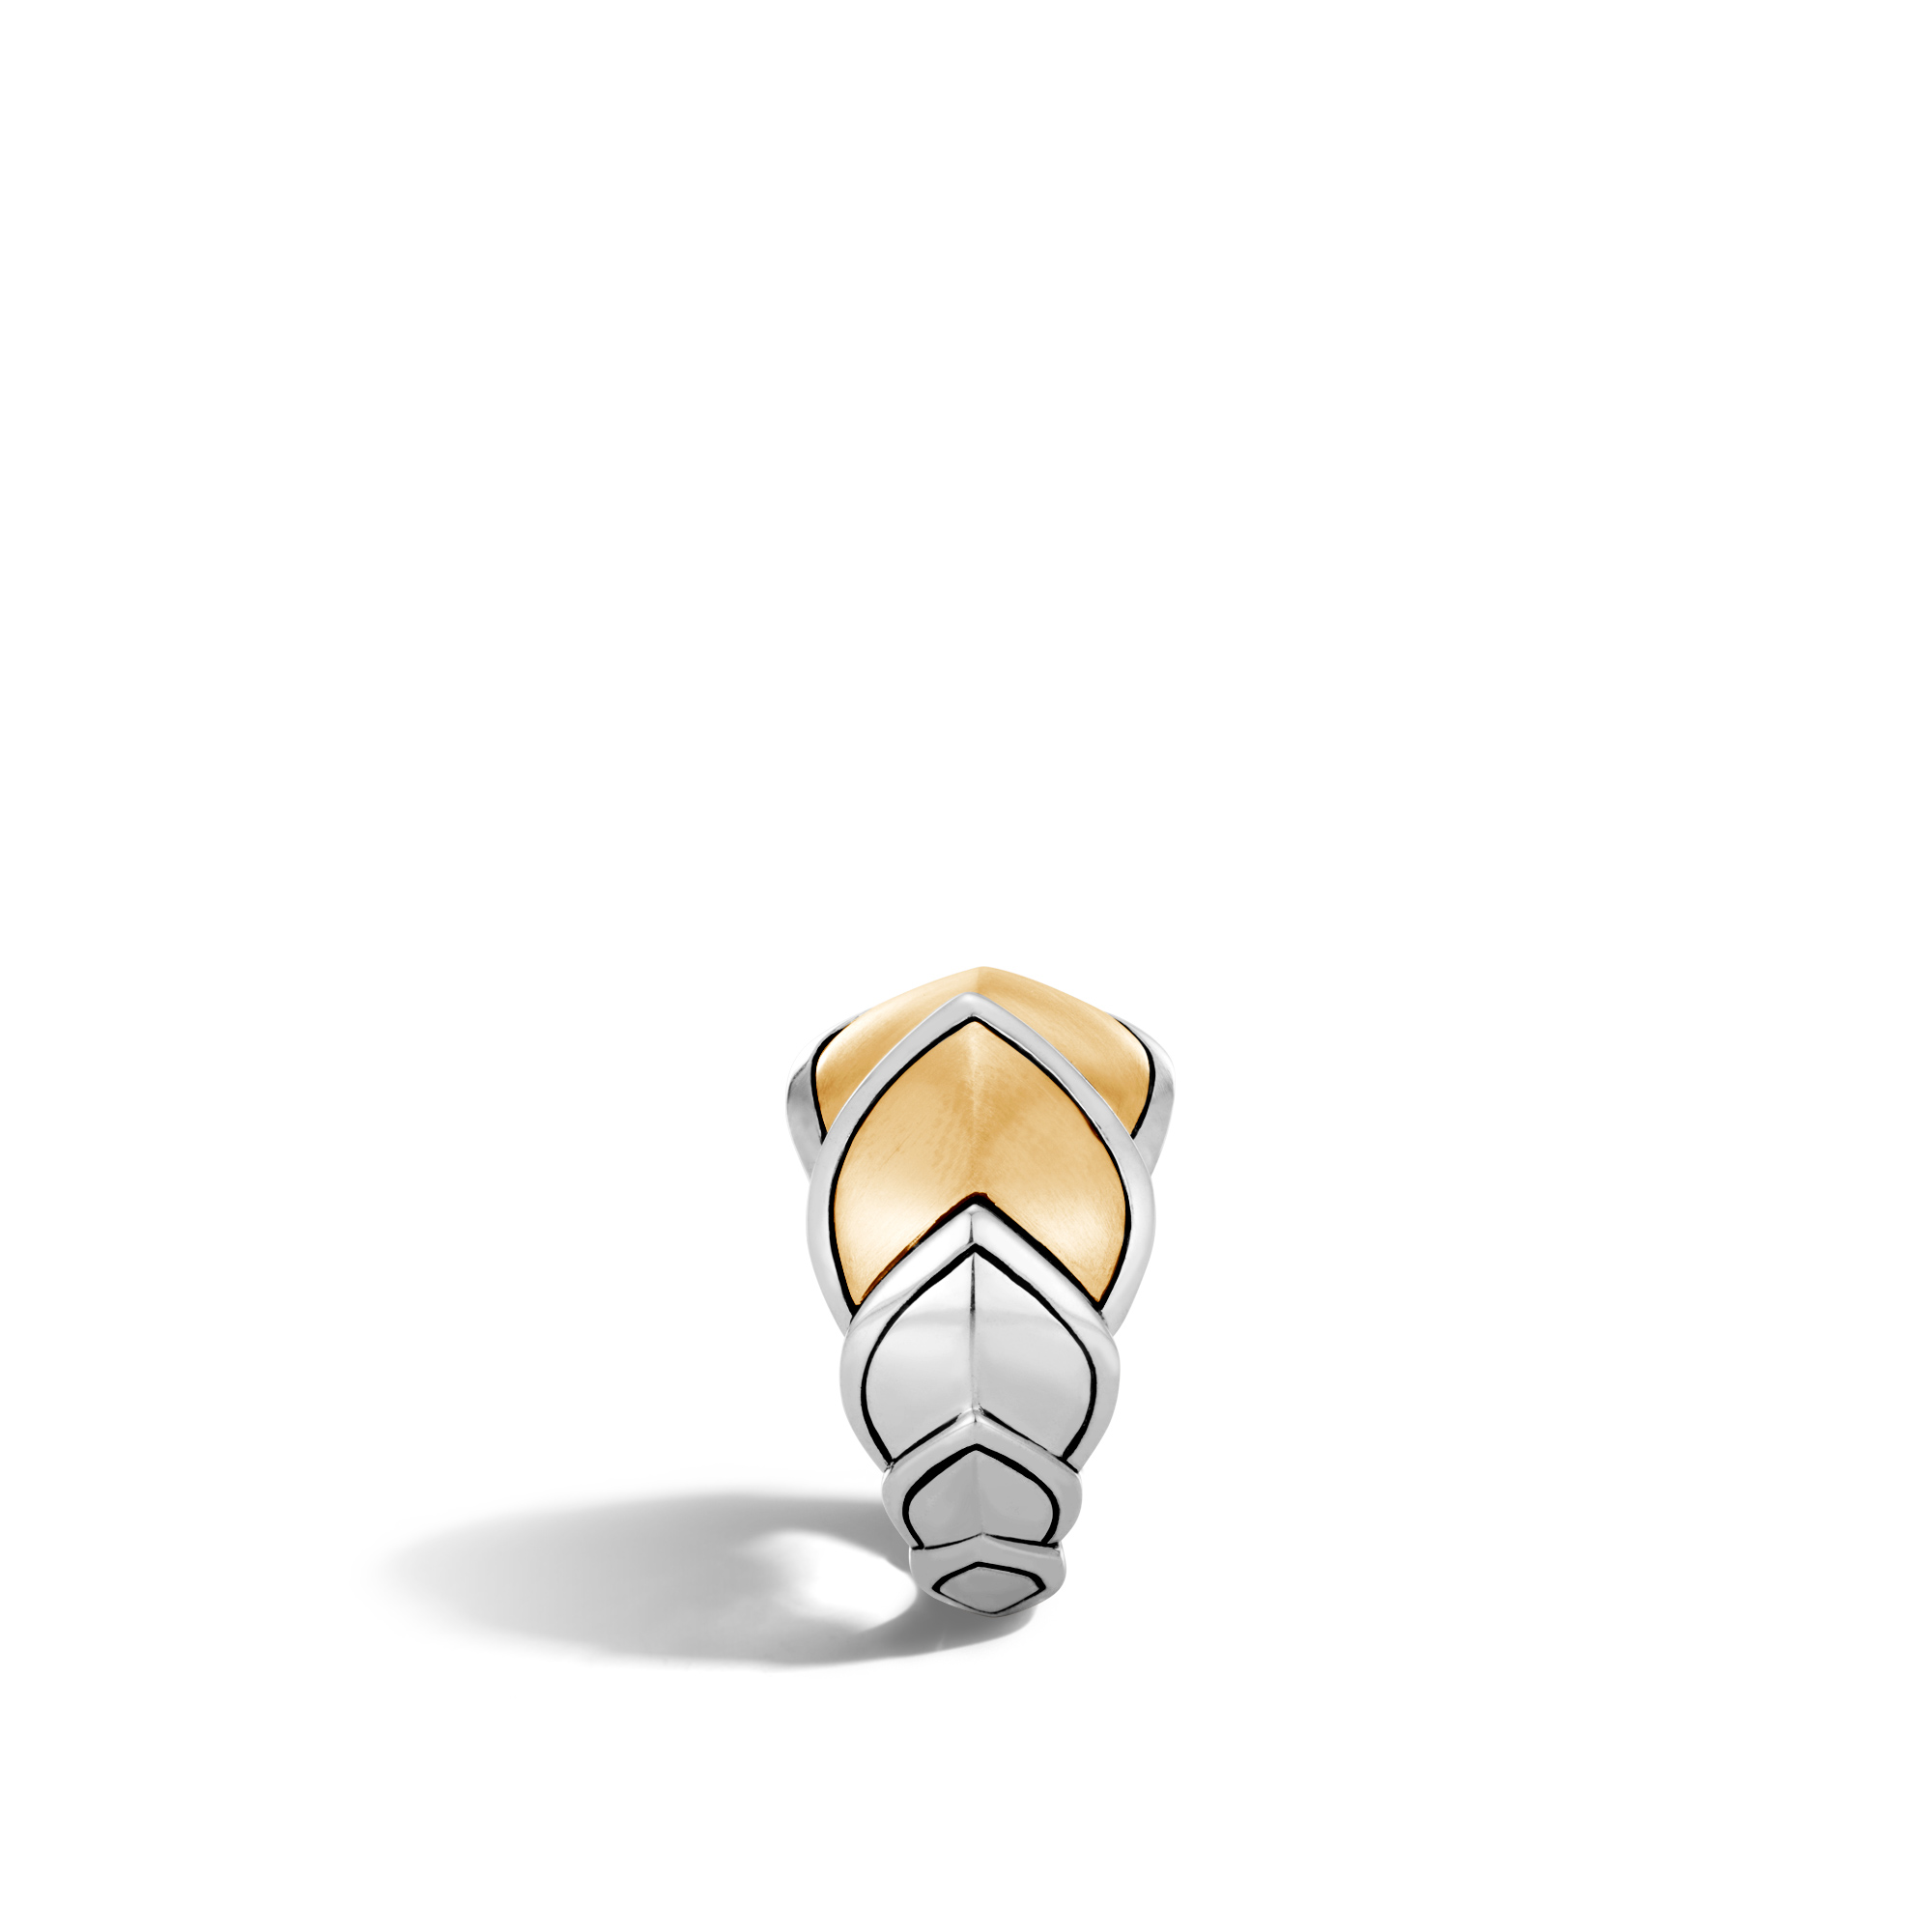 Legends Naga 15MM Ring in Silver and Brushed 18K Gold, , large